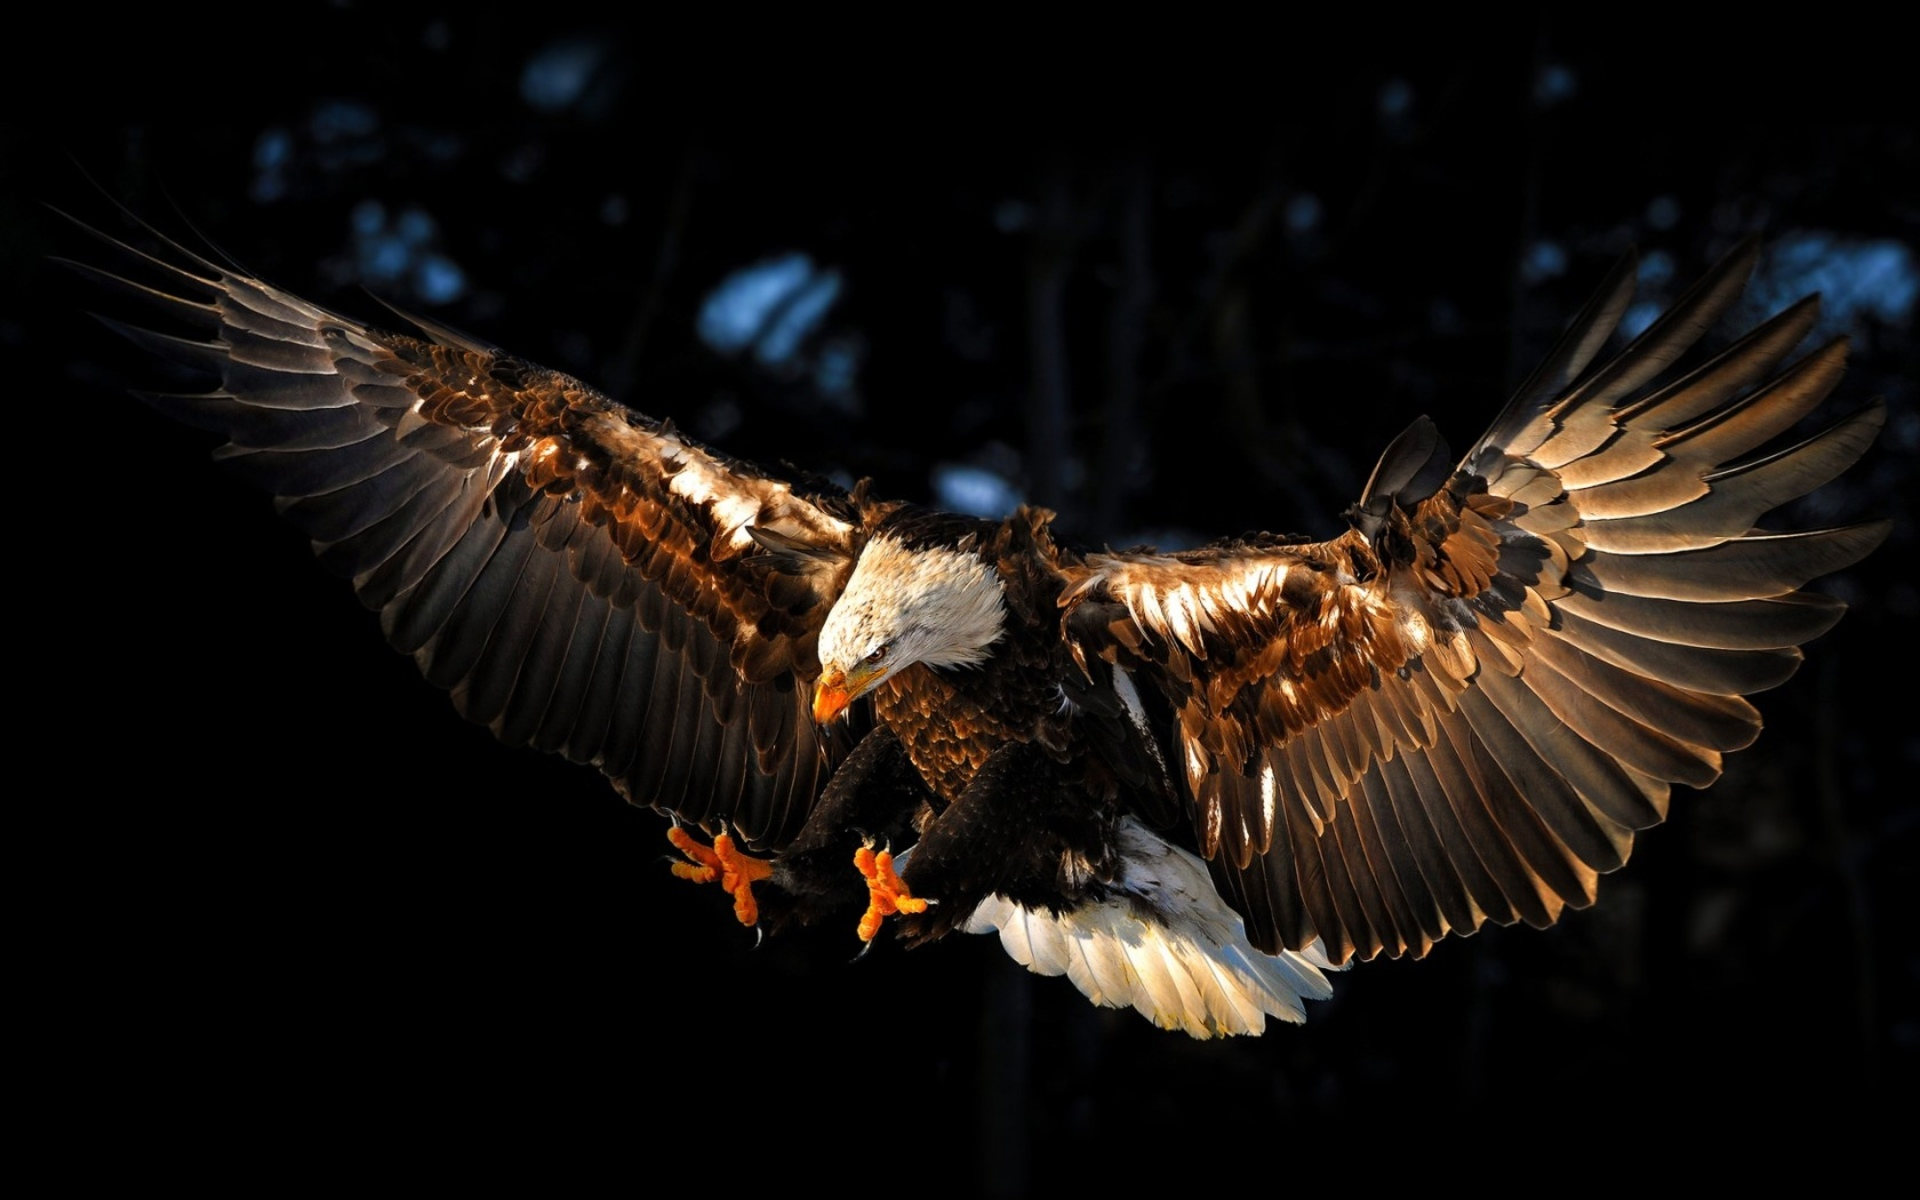 eagle 1280x1024 wallpaper - photo #47